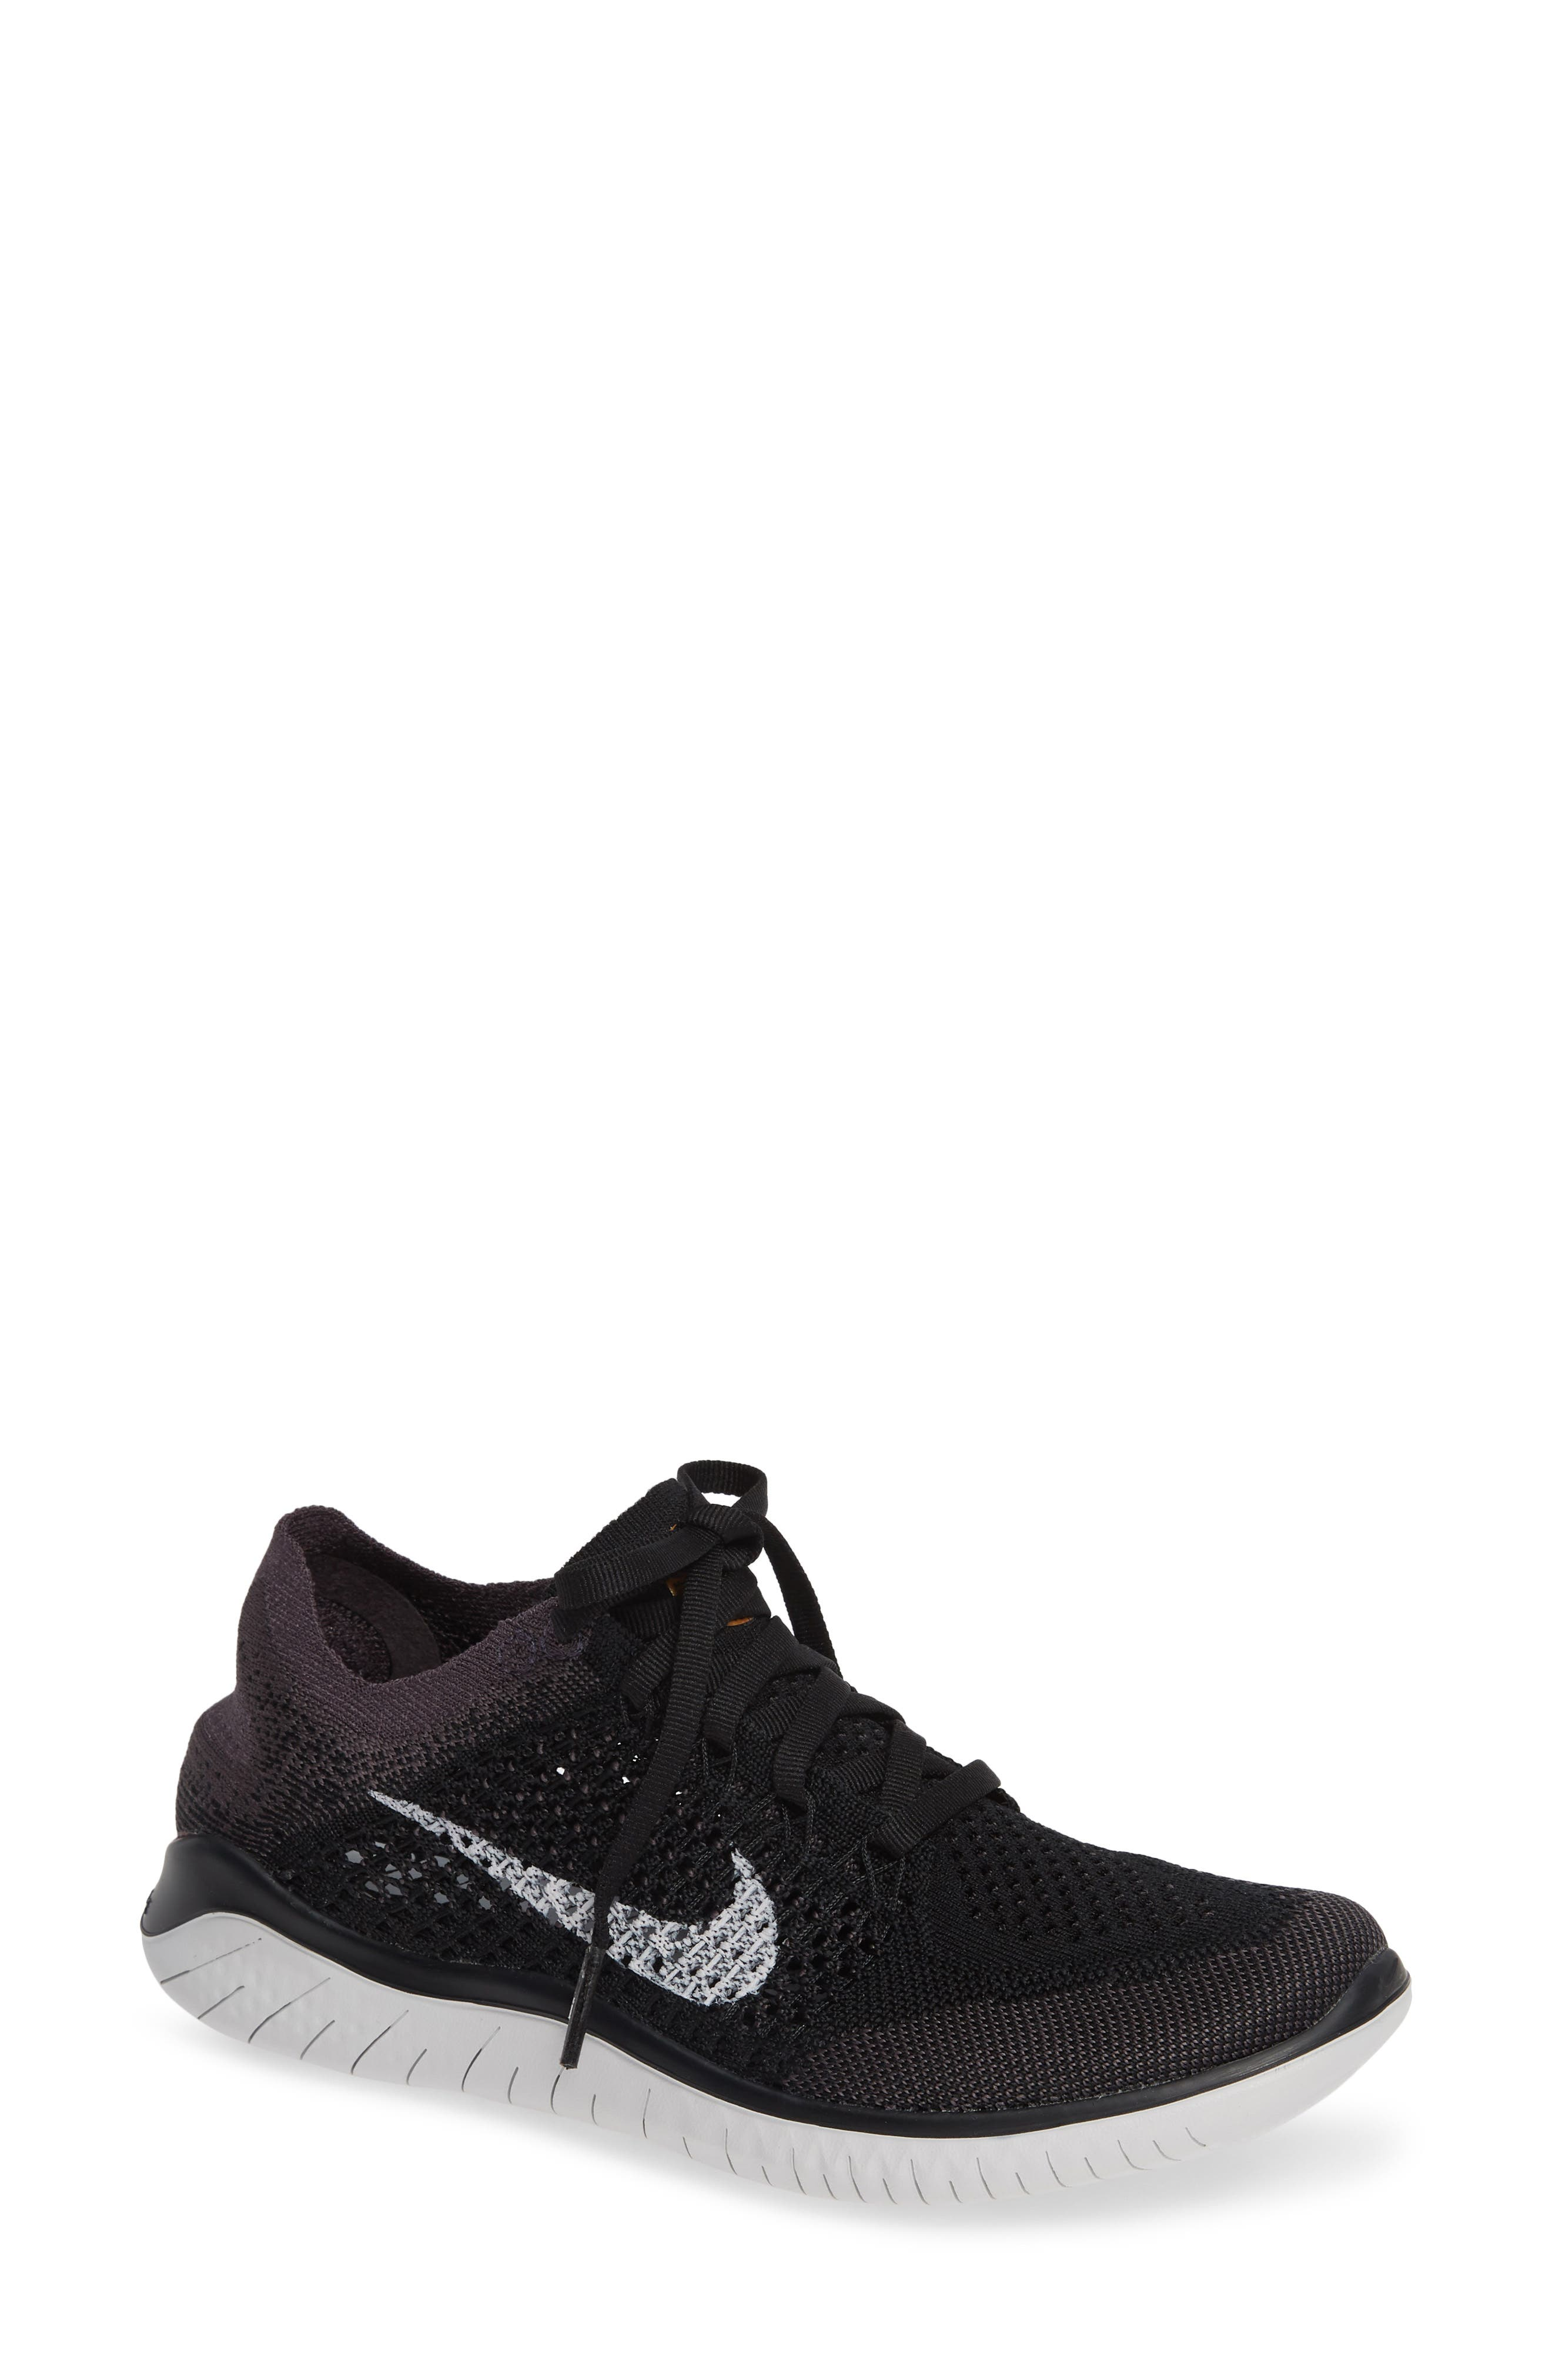 Free RN Flyknit 2018 Running Shoe, Main, color, BLACK/ VAST GREY/ GOLD